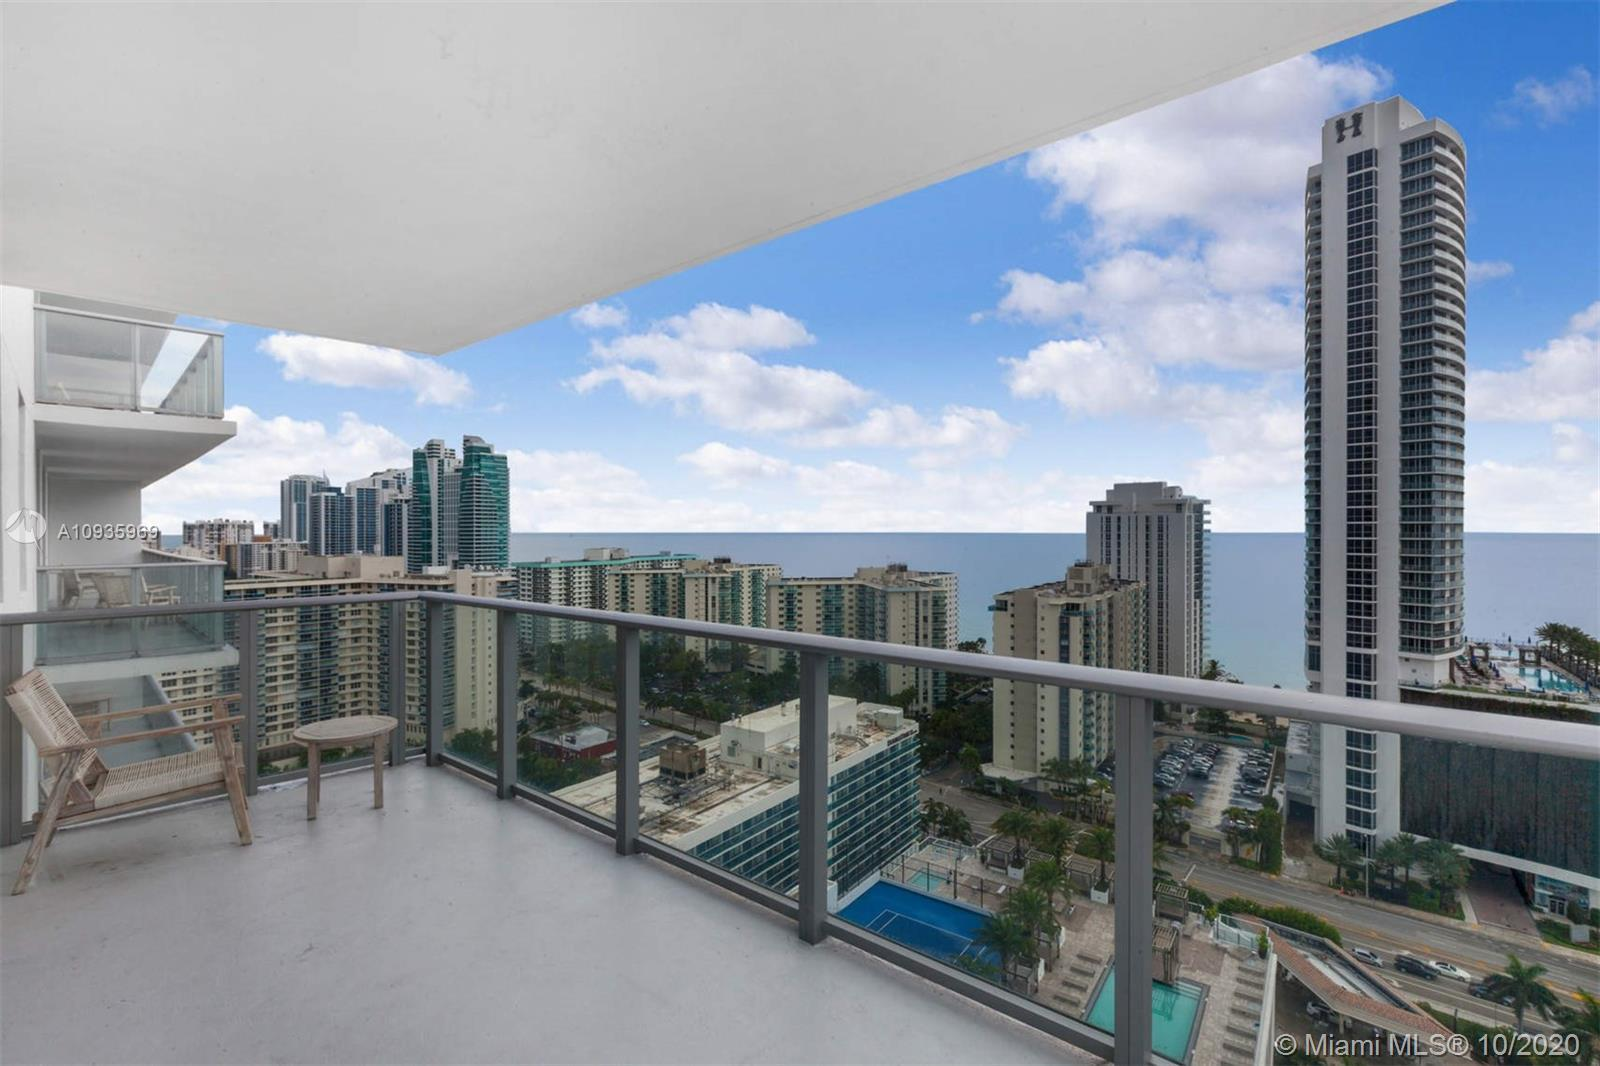 Bran NEW Corner Unit with Ocean,Incontracostal & City views from all rooms, enjoy amazing sunrises/s